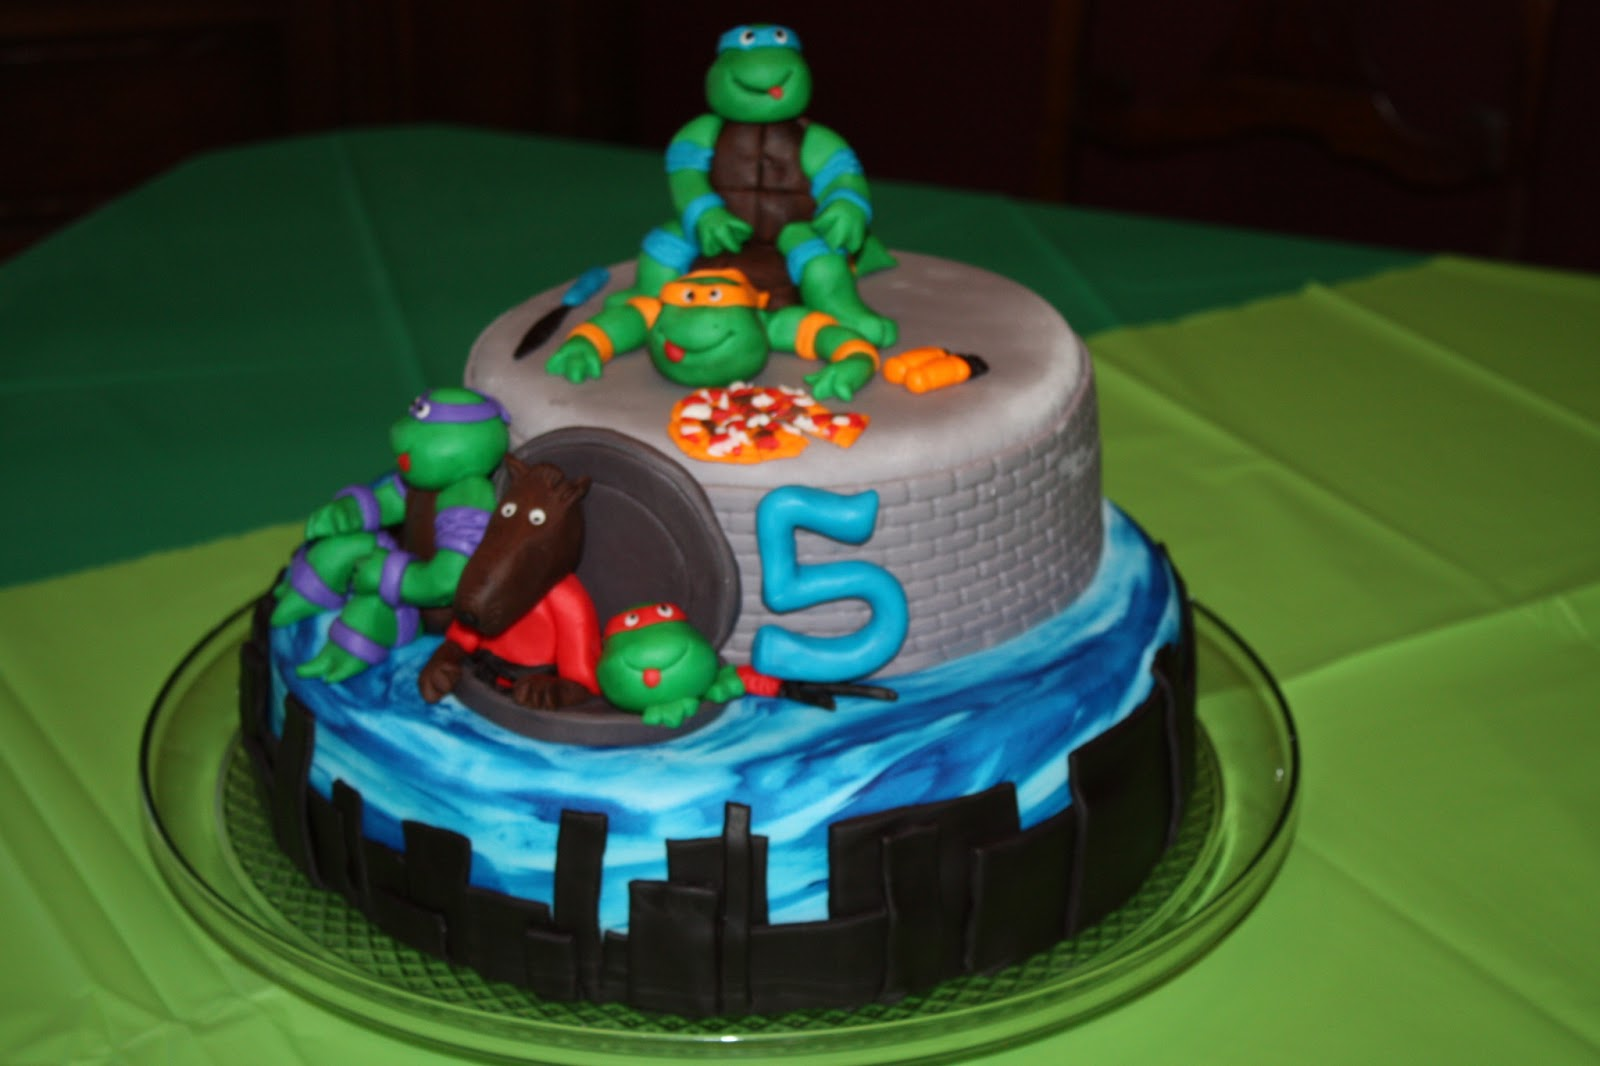 Ninja Turtles Birthday Cake Uk Image Inspiration of Cake and